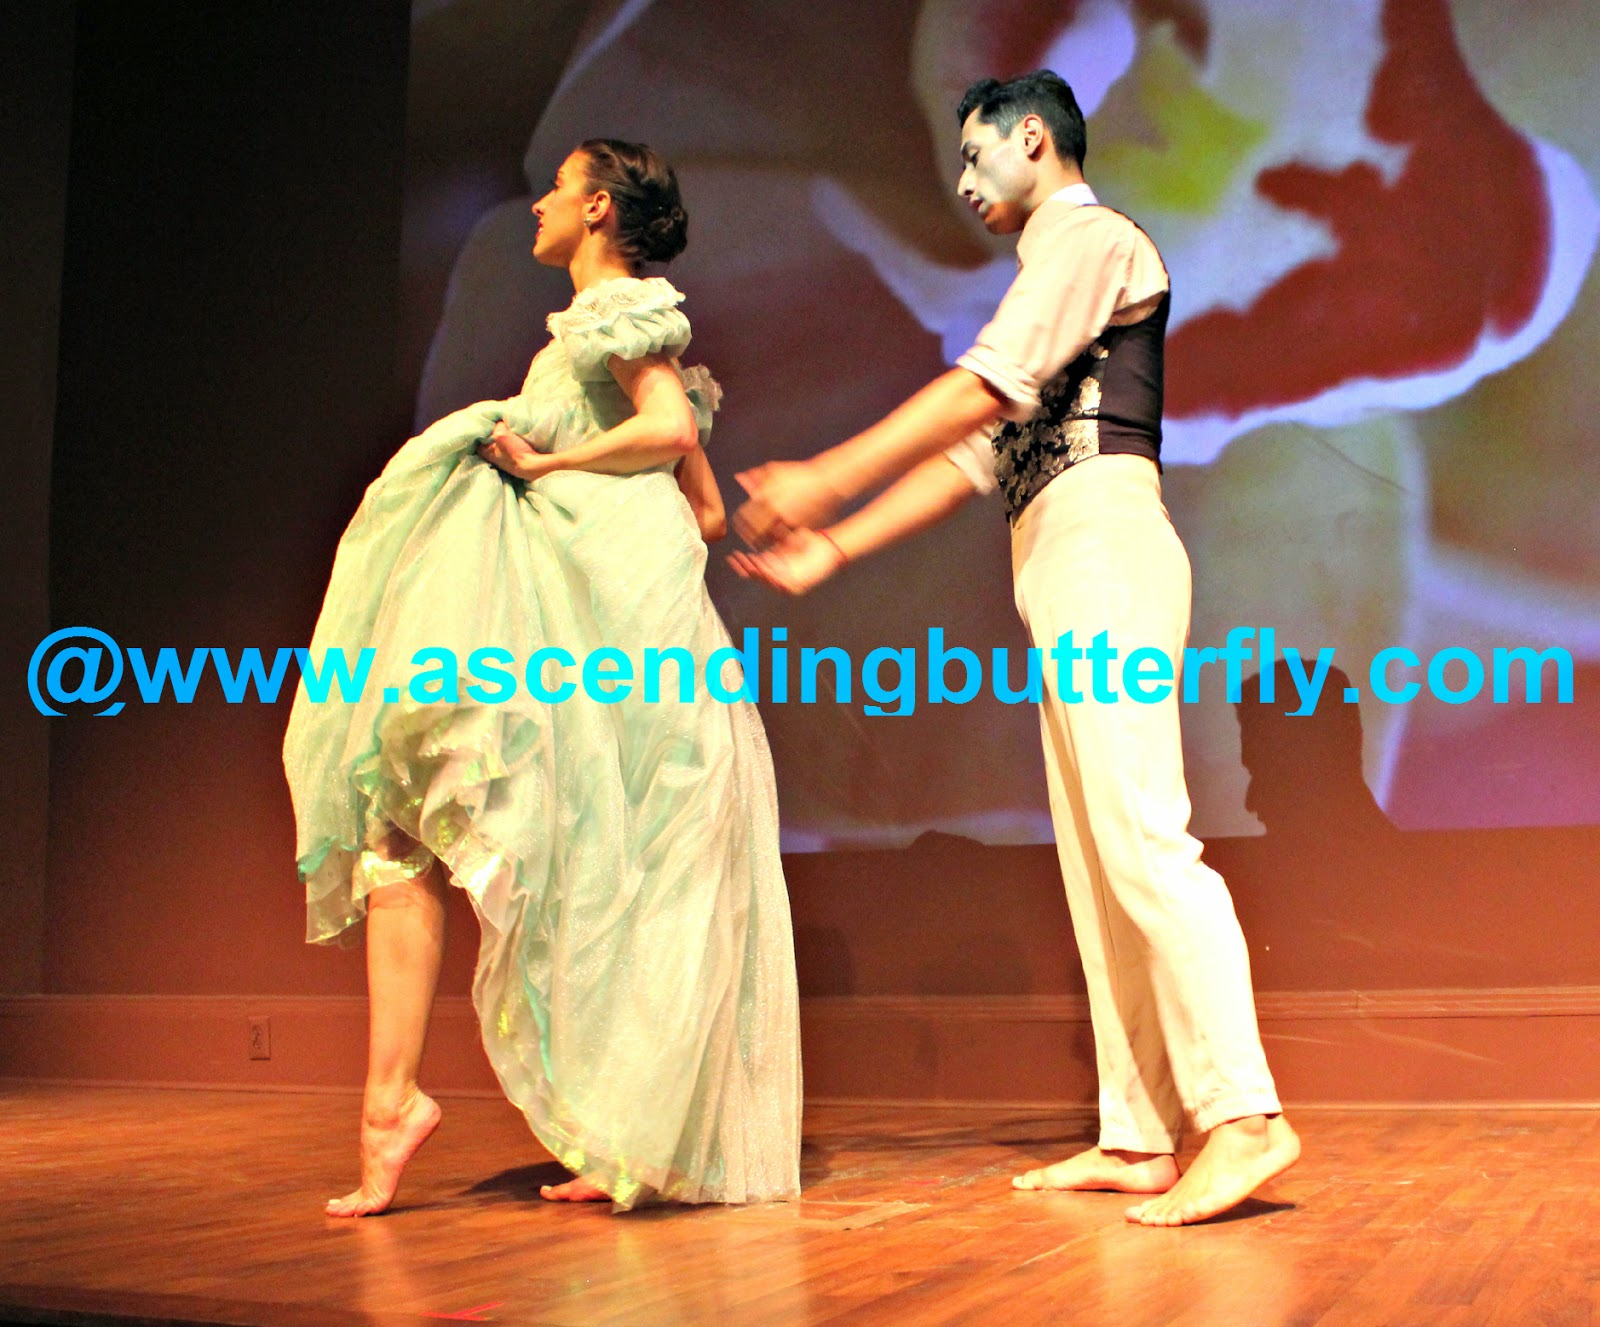 Ballet Hispanico BHdos dancers in motion performing El Vals - Waltz Duet From Left to Right: Nicole Garcia, Nicolay Espitia.